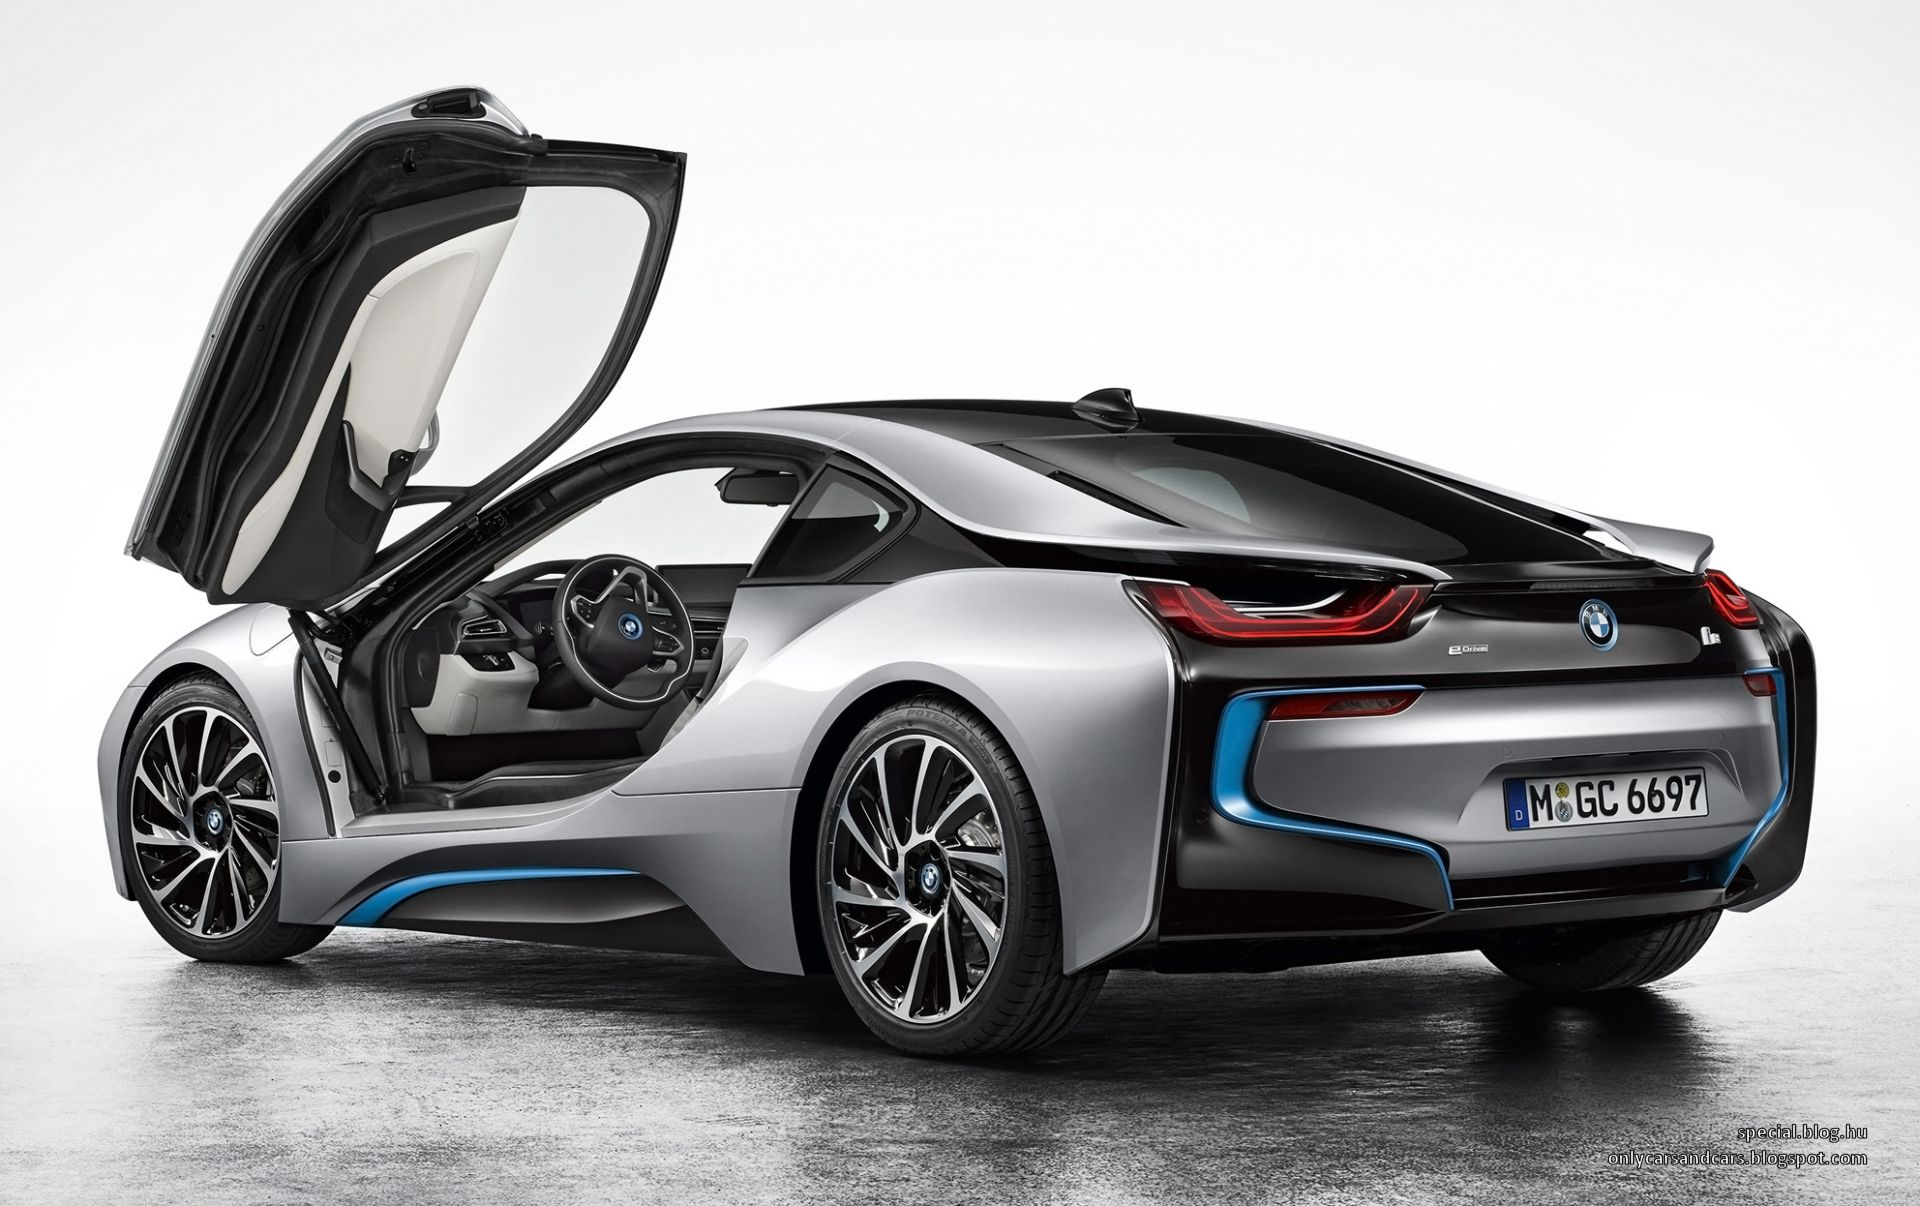 You can bookmark this page url http useddaewoocars blogspot com by 2013 09 bmw i8 html thanks